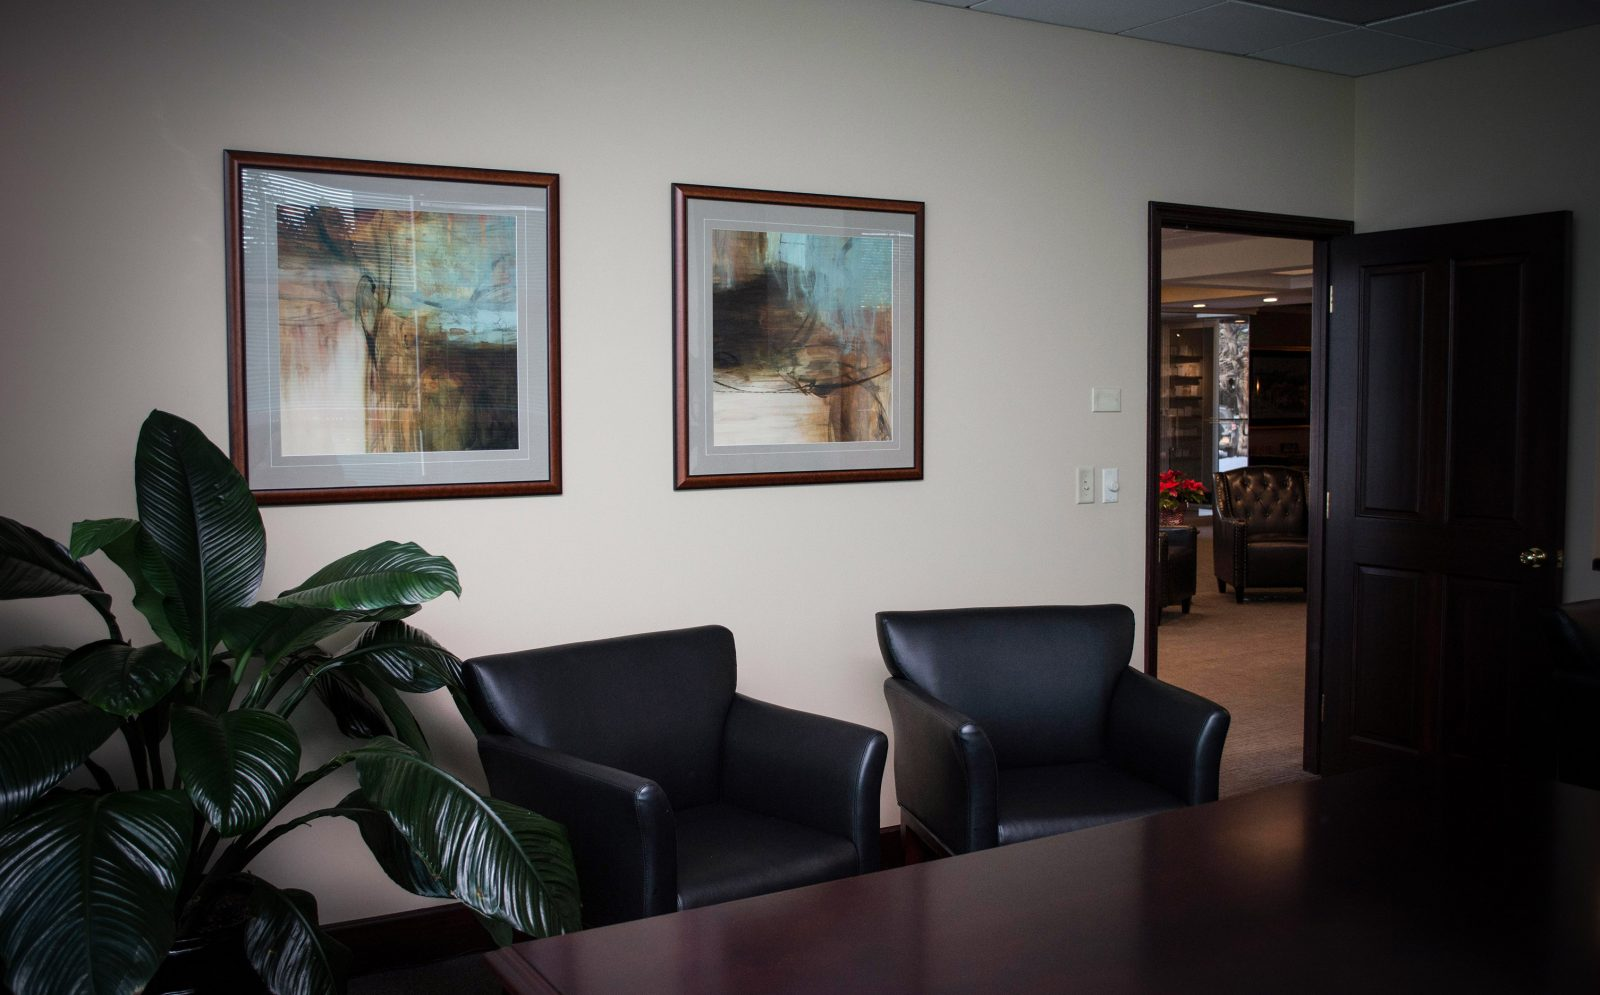 framed artwork in an office building with the door open